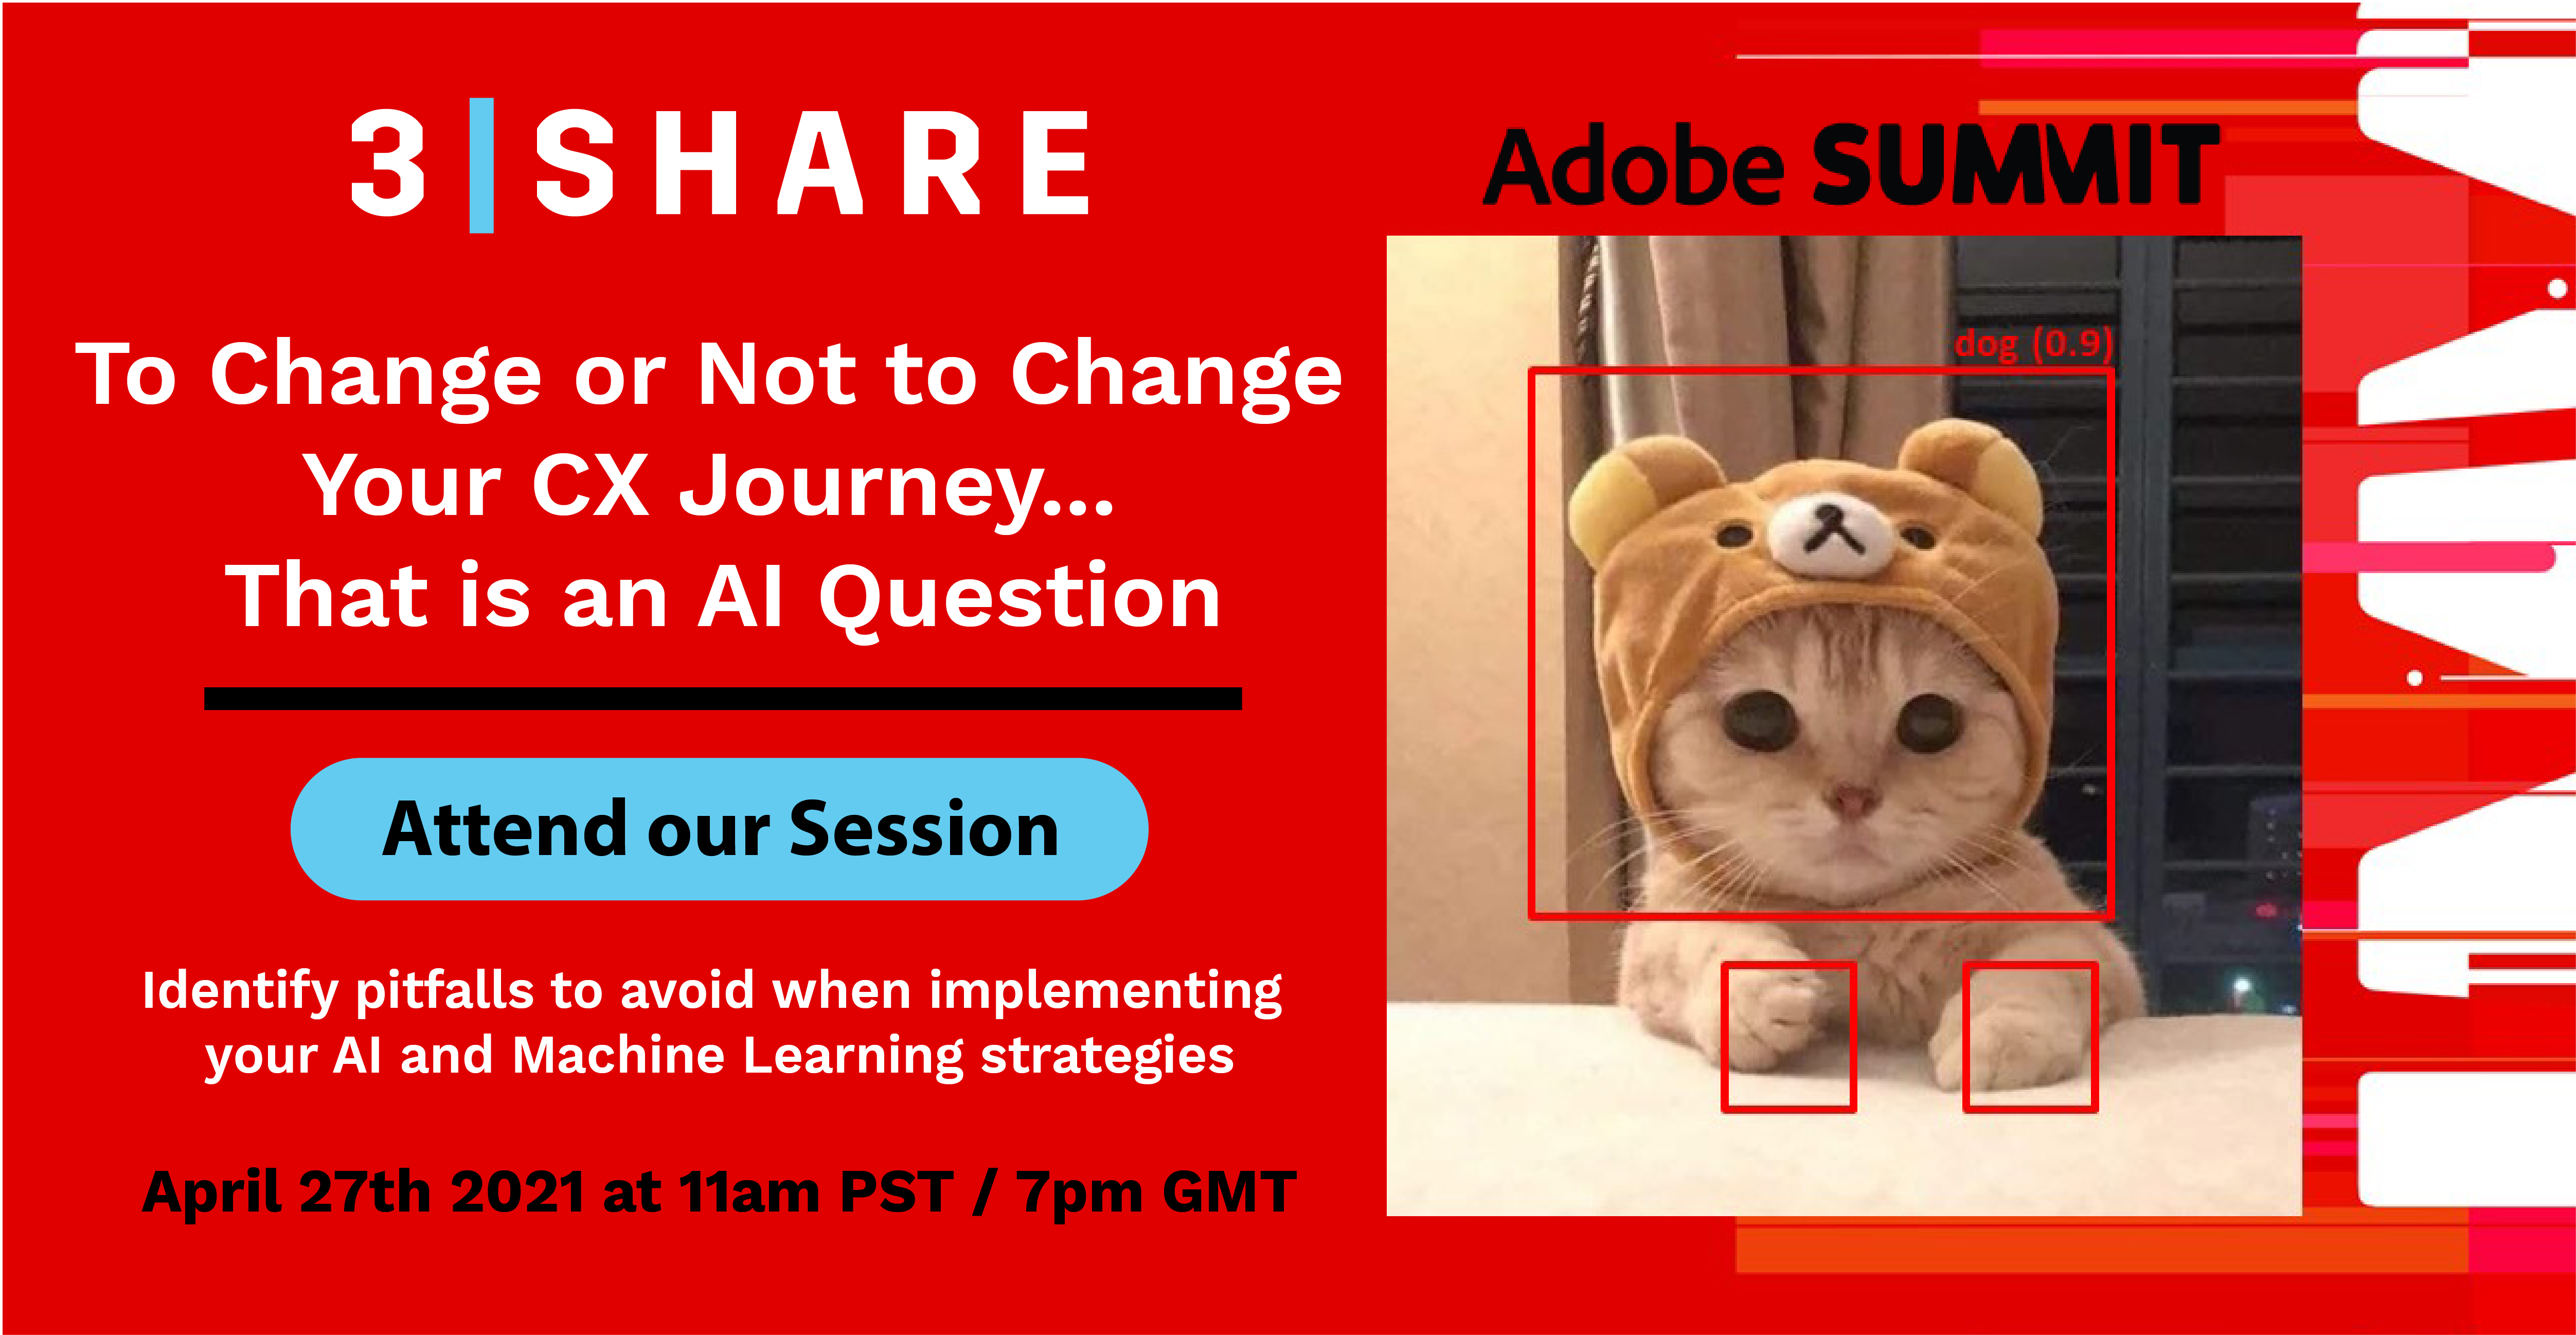 3SHARE: Join us at #AdobeSummit for our FREE virtual session on AI and CX: https://t.co/HMjDlsieQs nnTim Donovan of #3SHARE… https://t.co/0kEolbs9pI